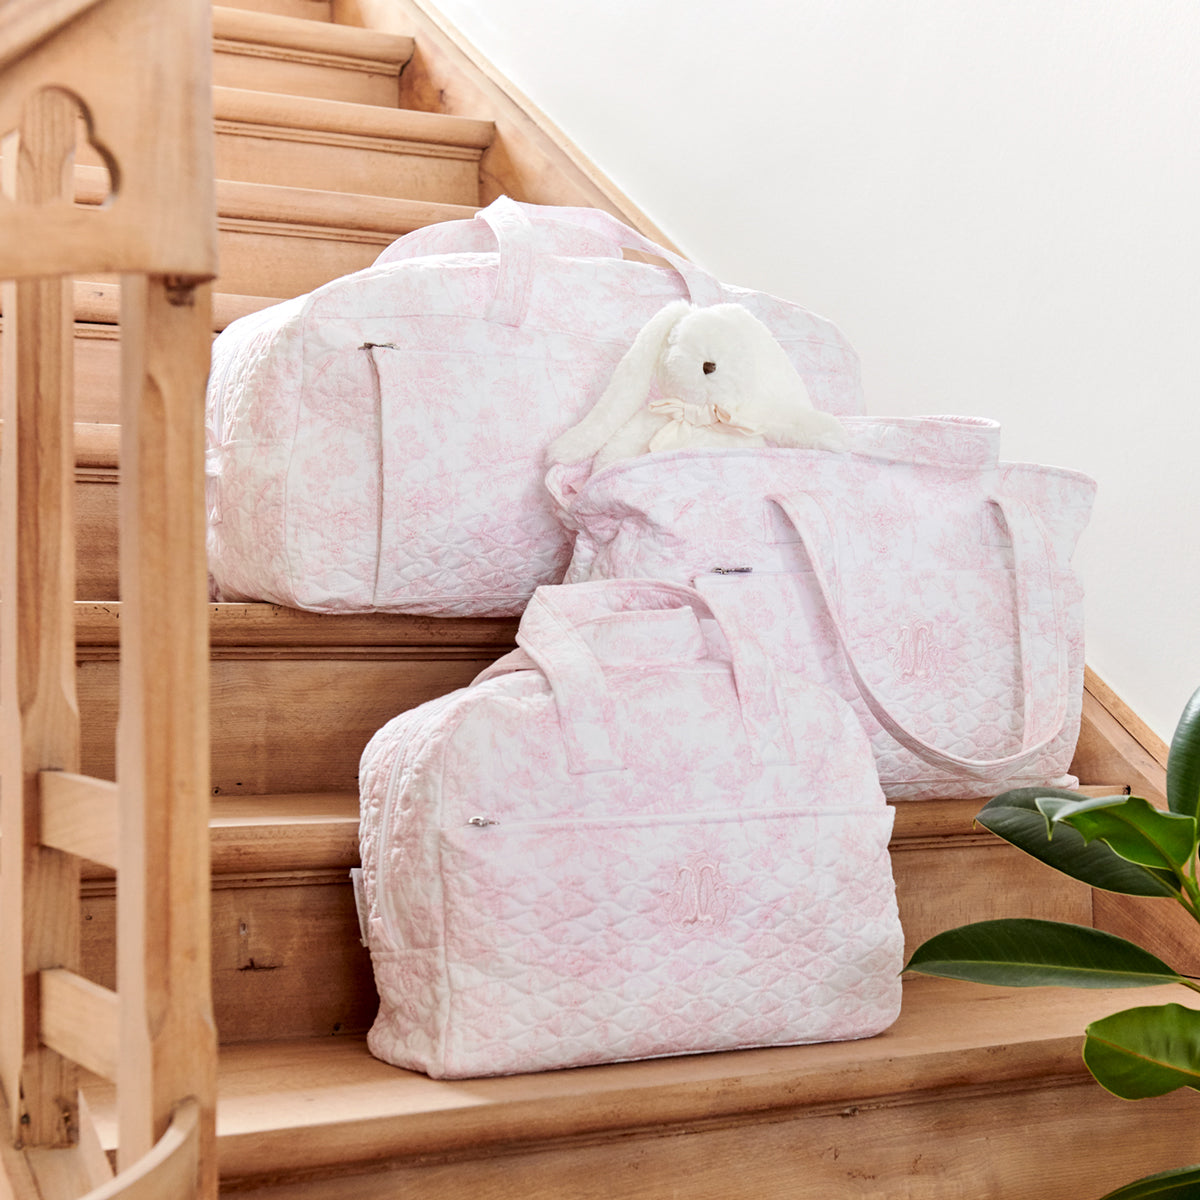 Theophile & Patachou Toiletry Bag Quilted - Sweet Pink